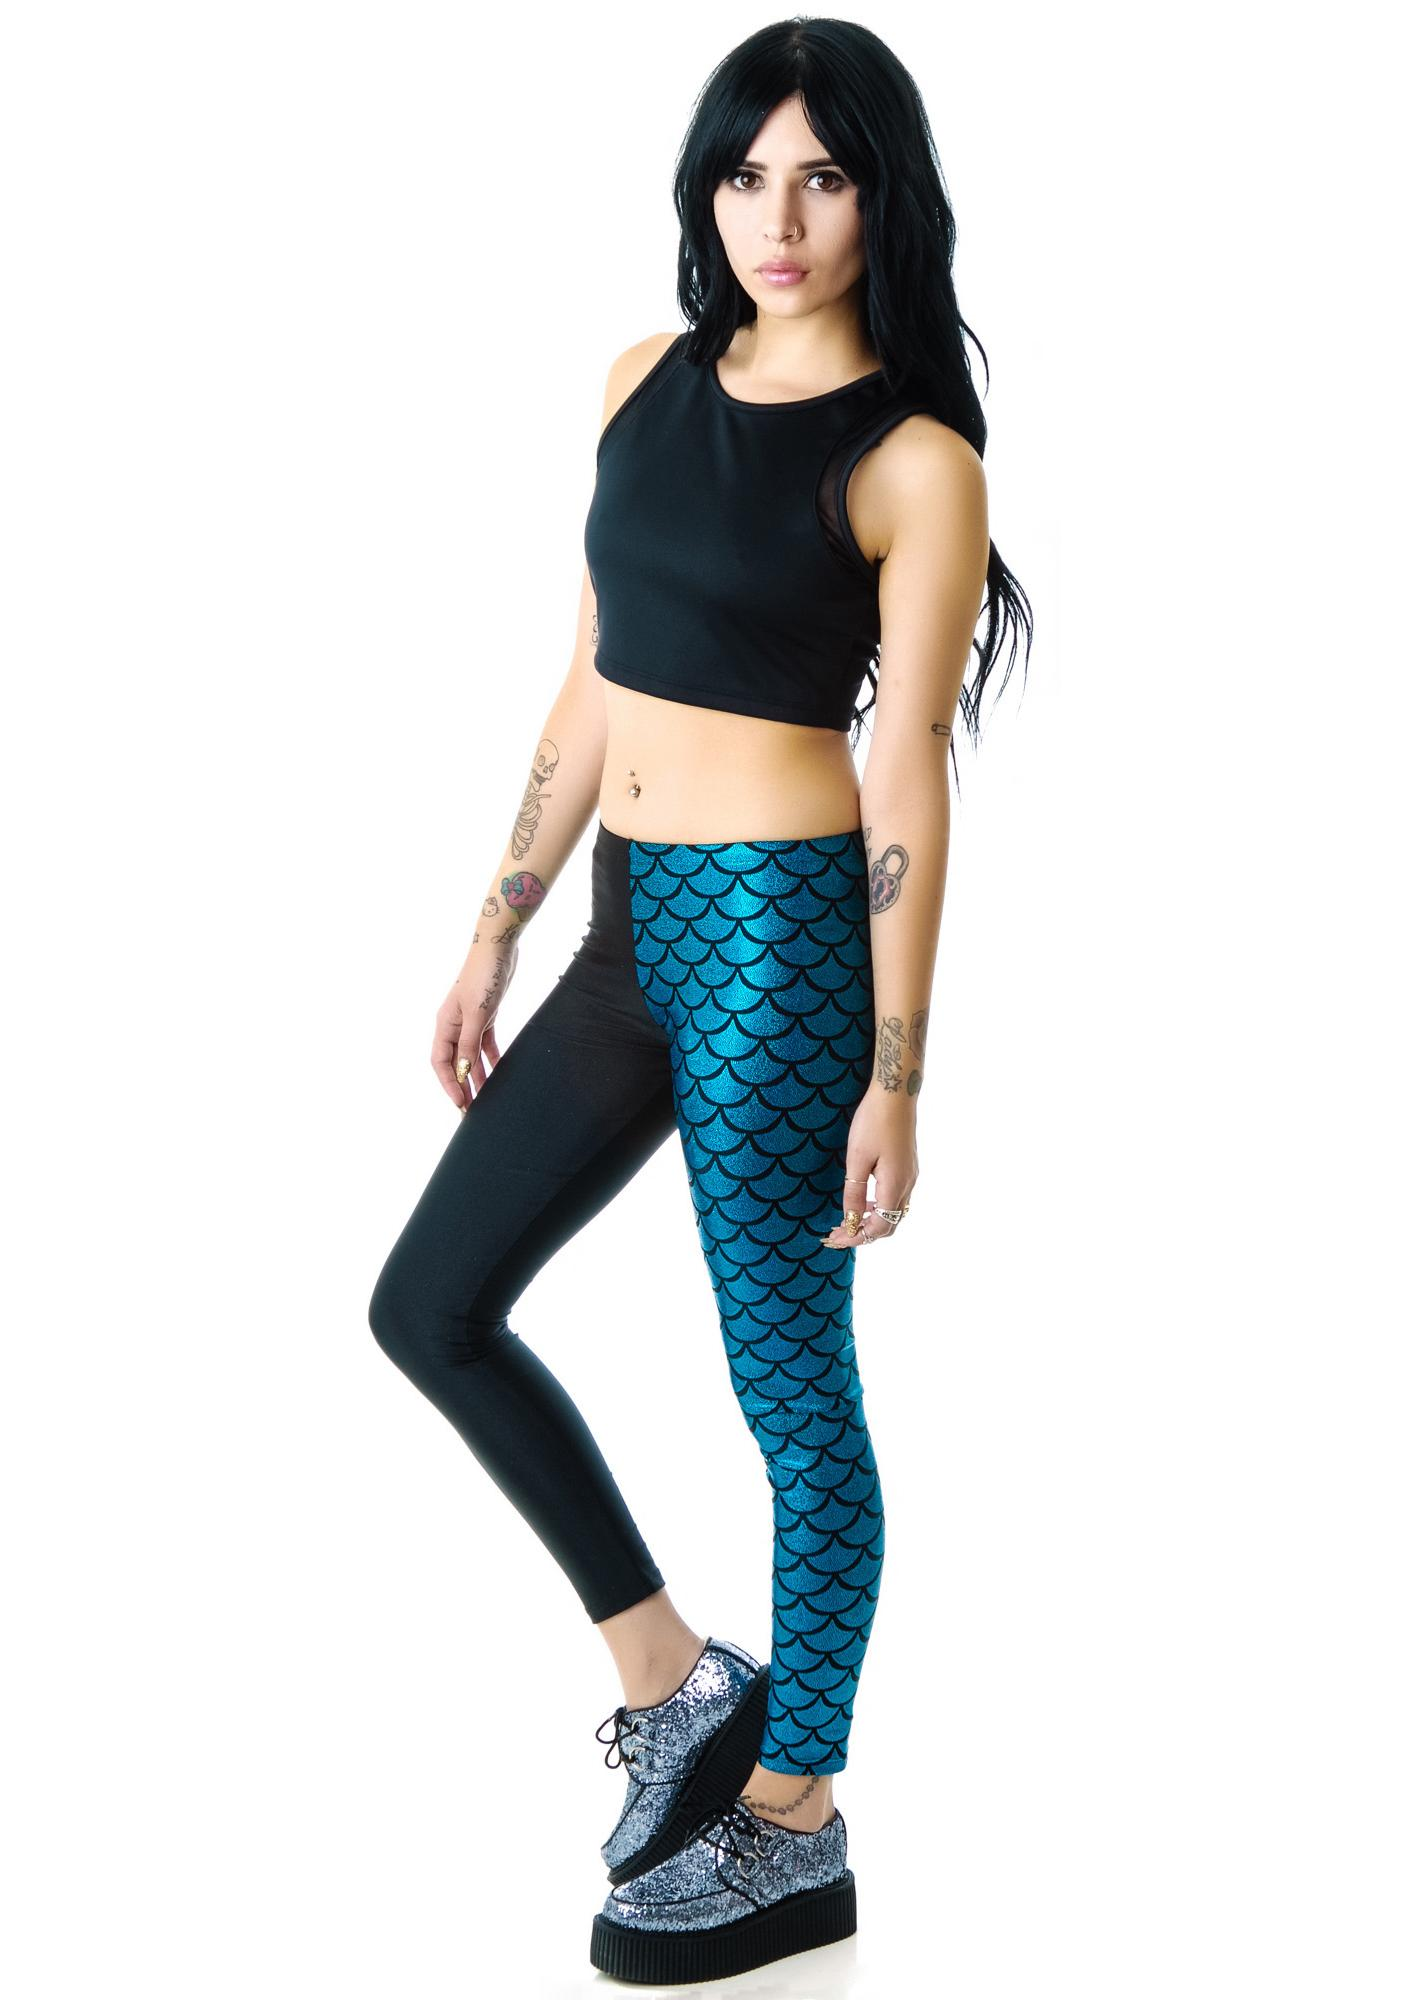 Zara Terez Turquoise Half Mermaid Leggings